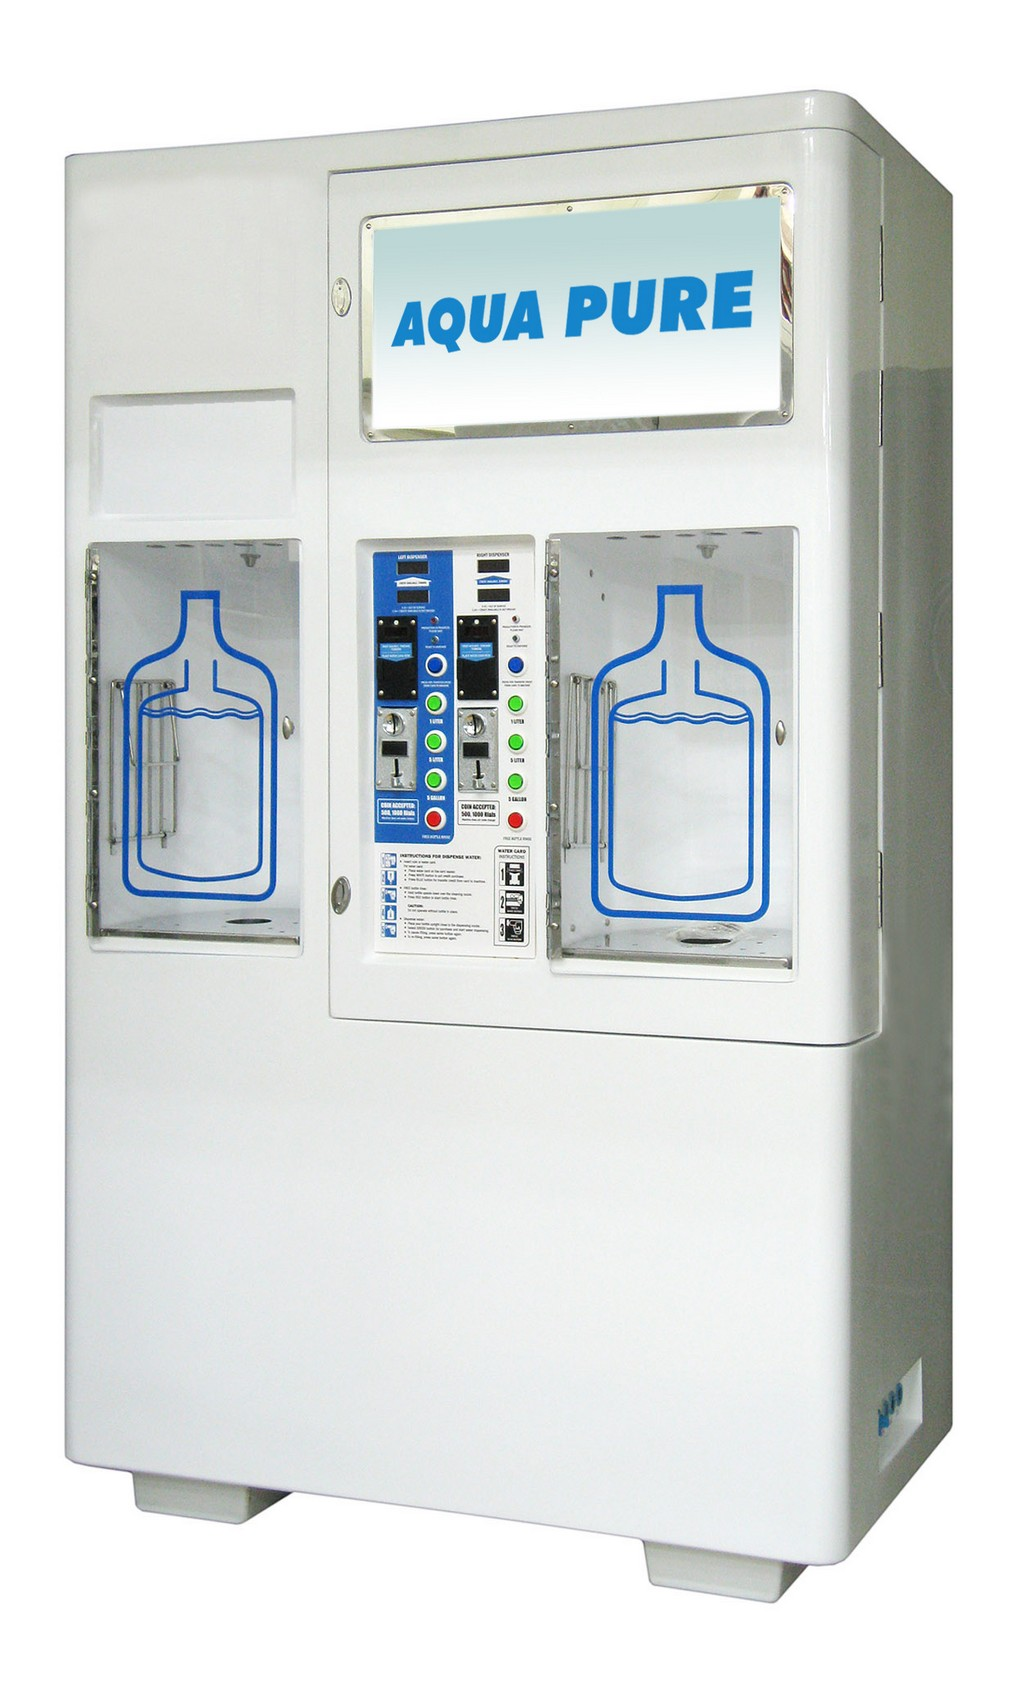 vending machine company, healthy vending machine in schools, vending machine suppliers